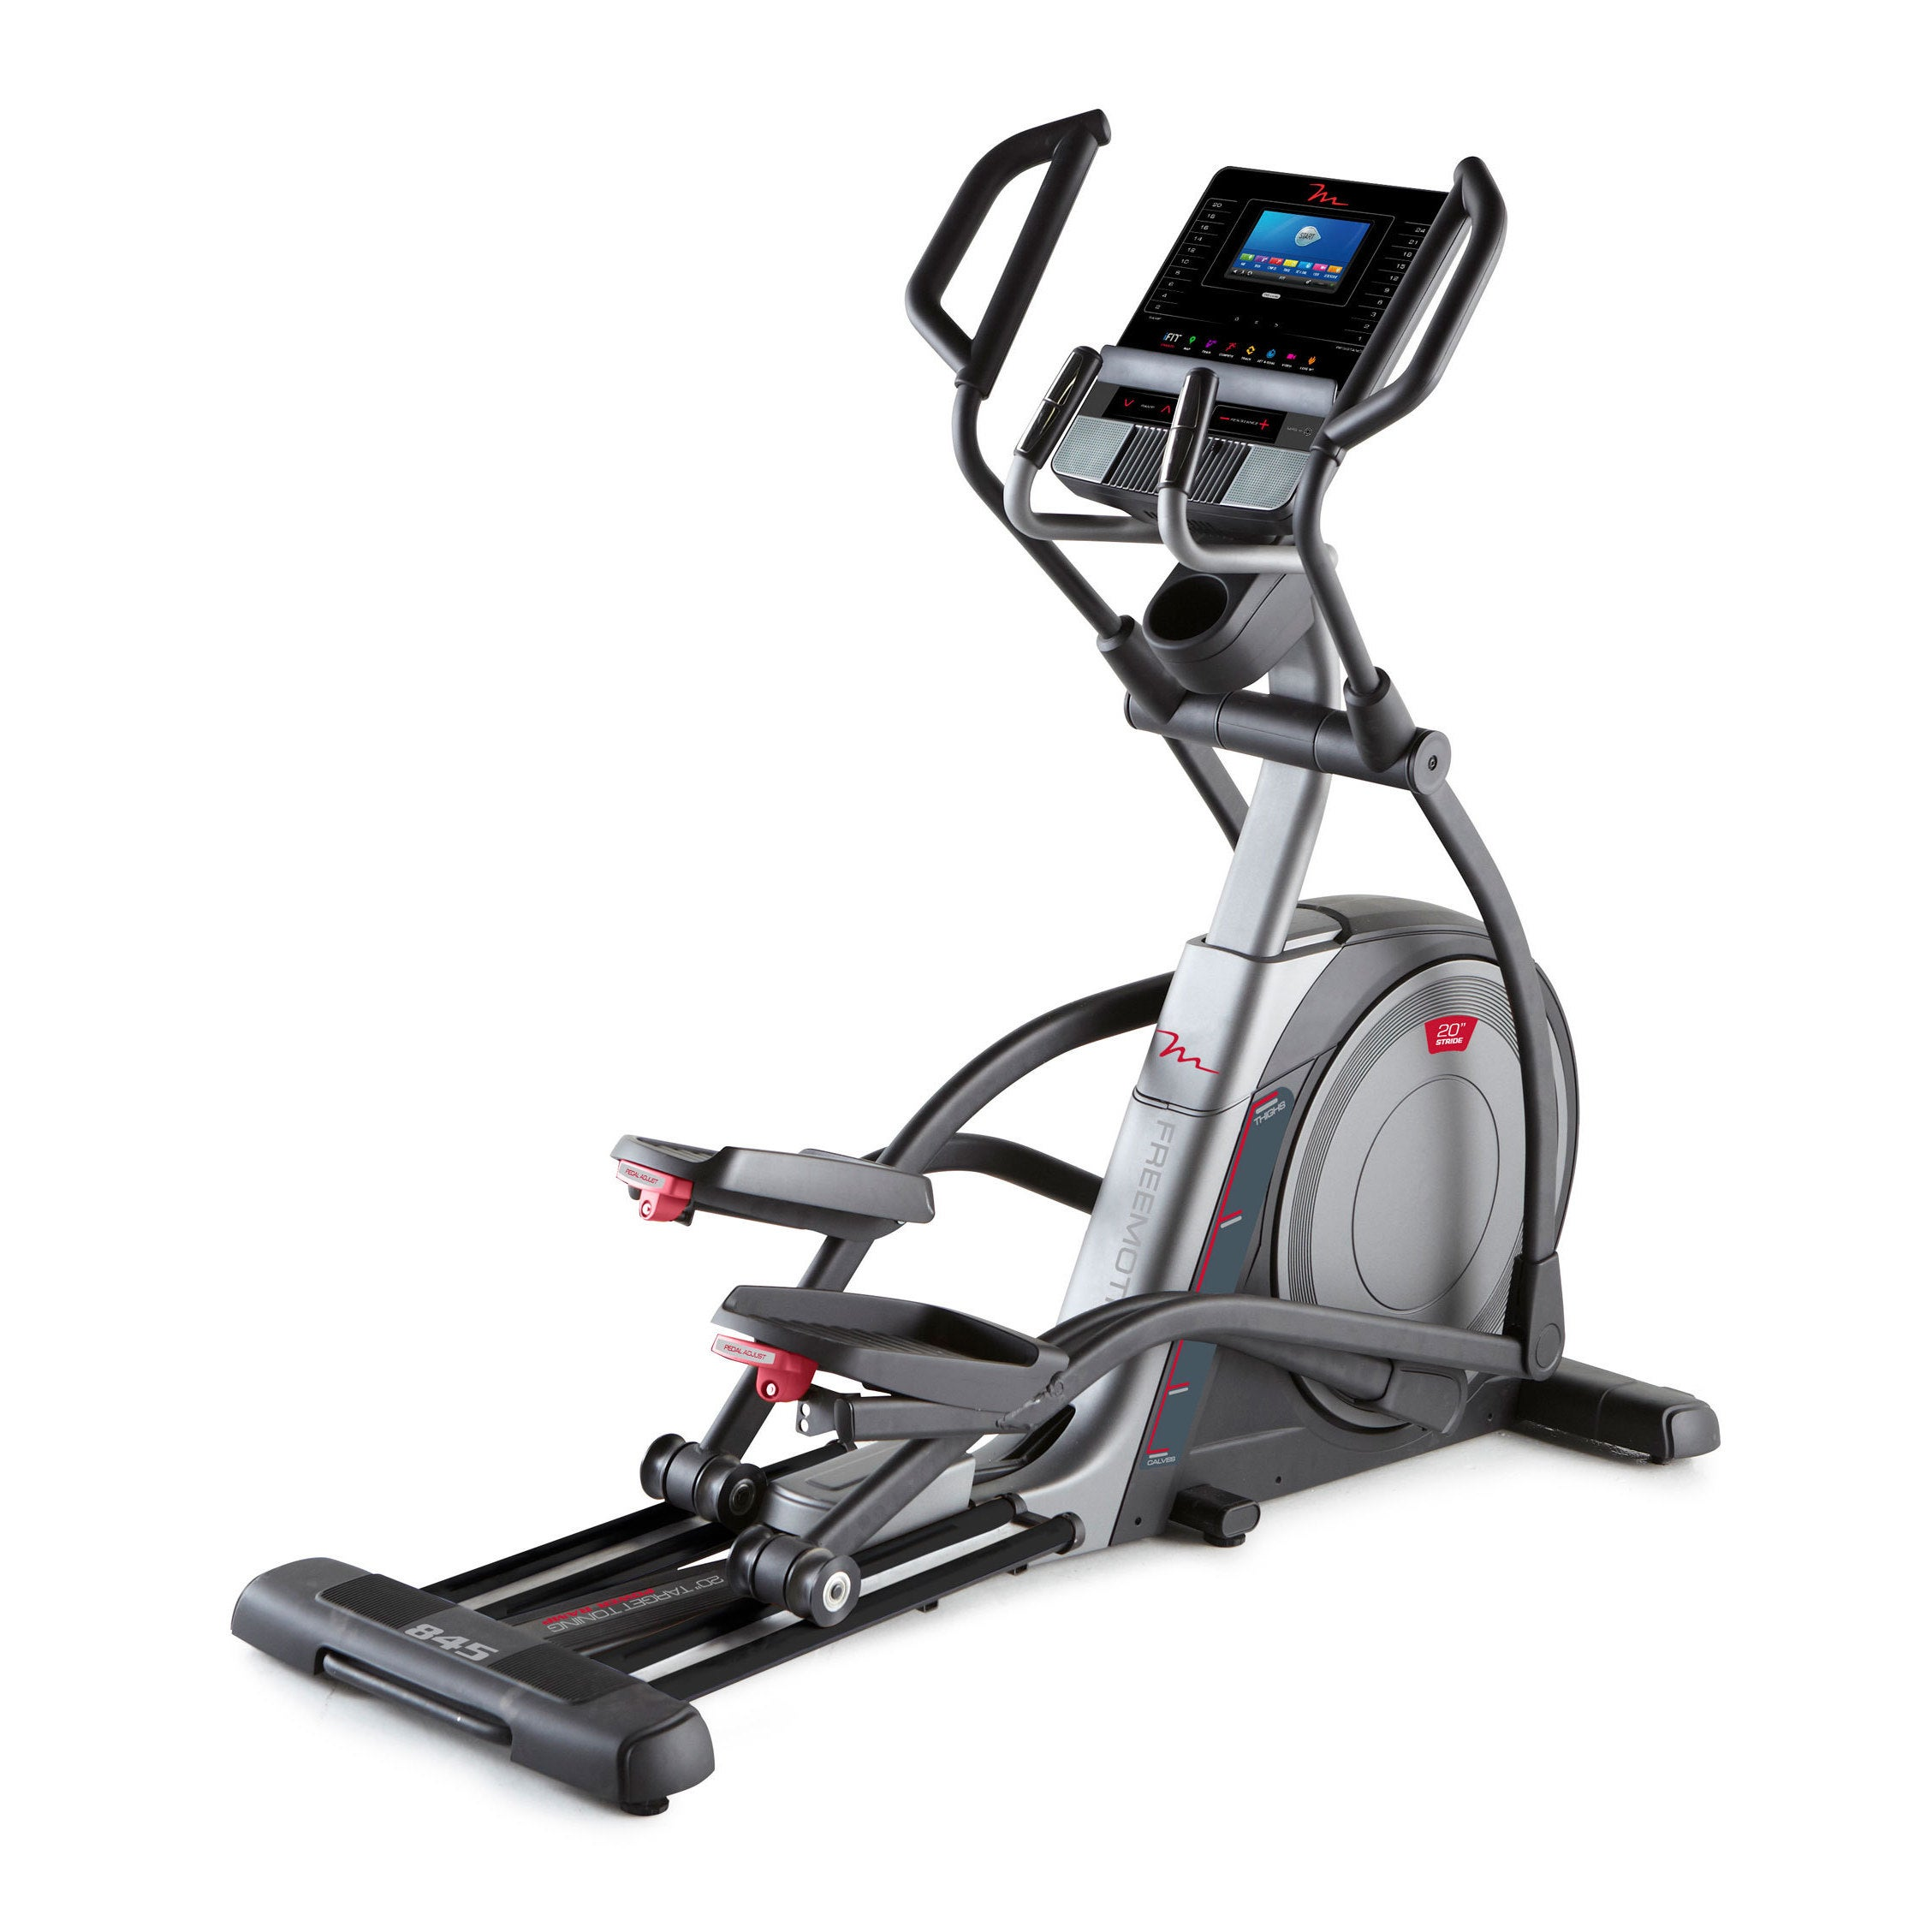 p cross domyos mat el machines trainer mats en r decathlon elliptical